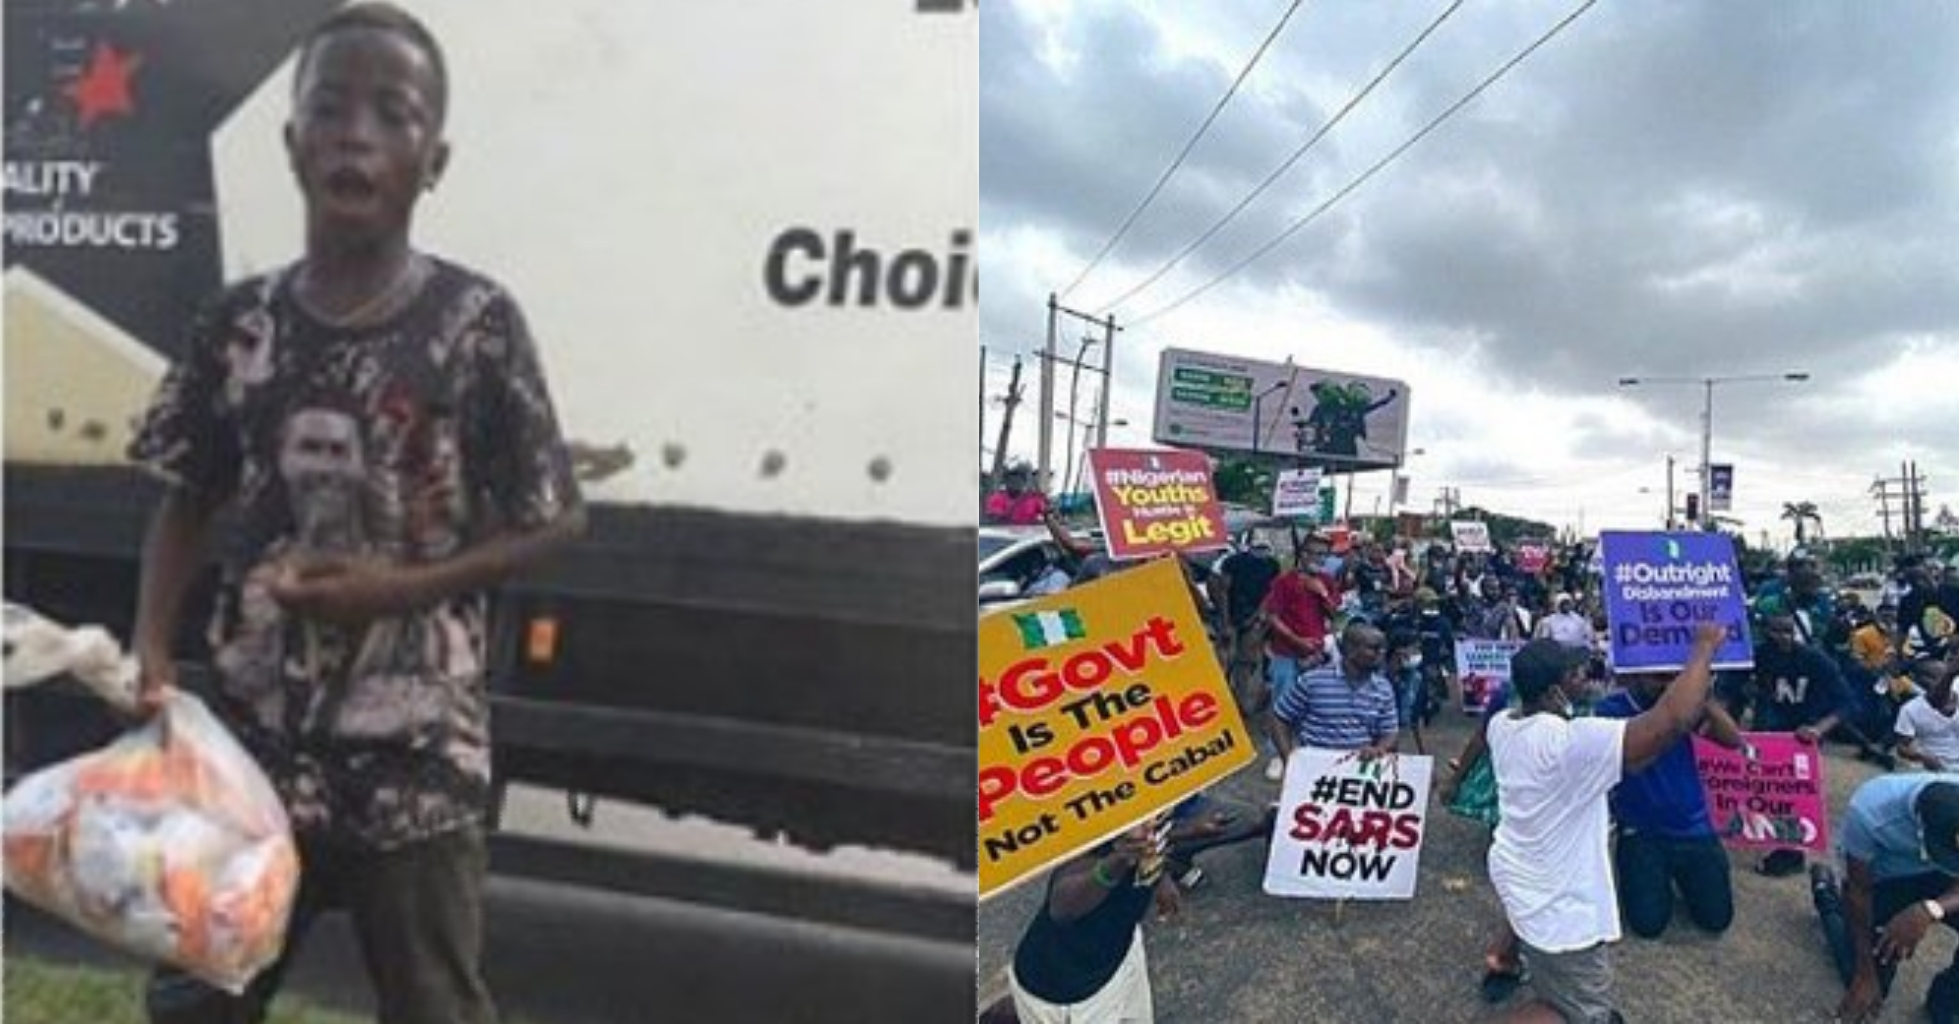 I will like to pay for his school fees till SS3, help me locate him – Man expresses desire to train young hawker who gave snacks to protesters for free